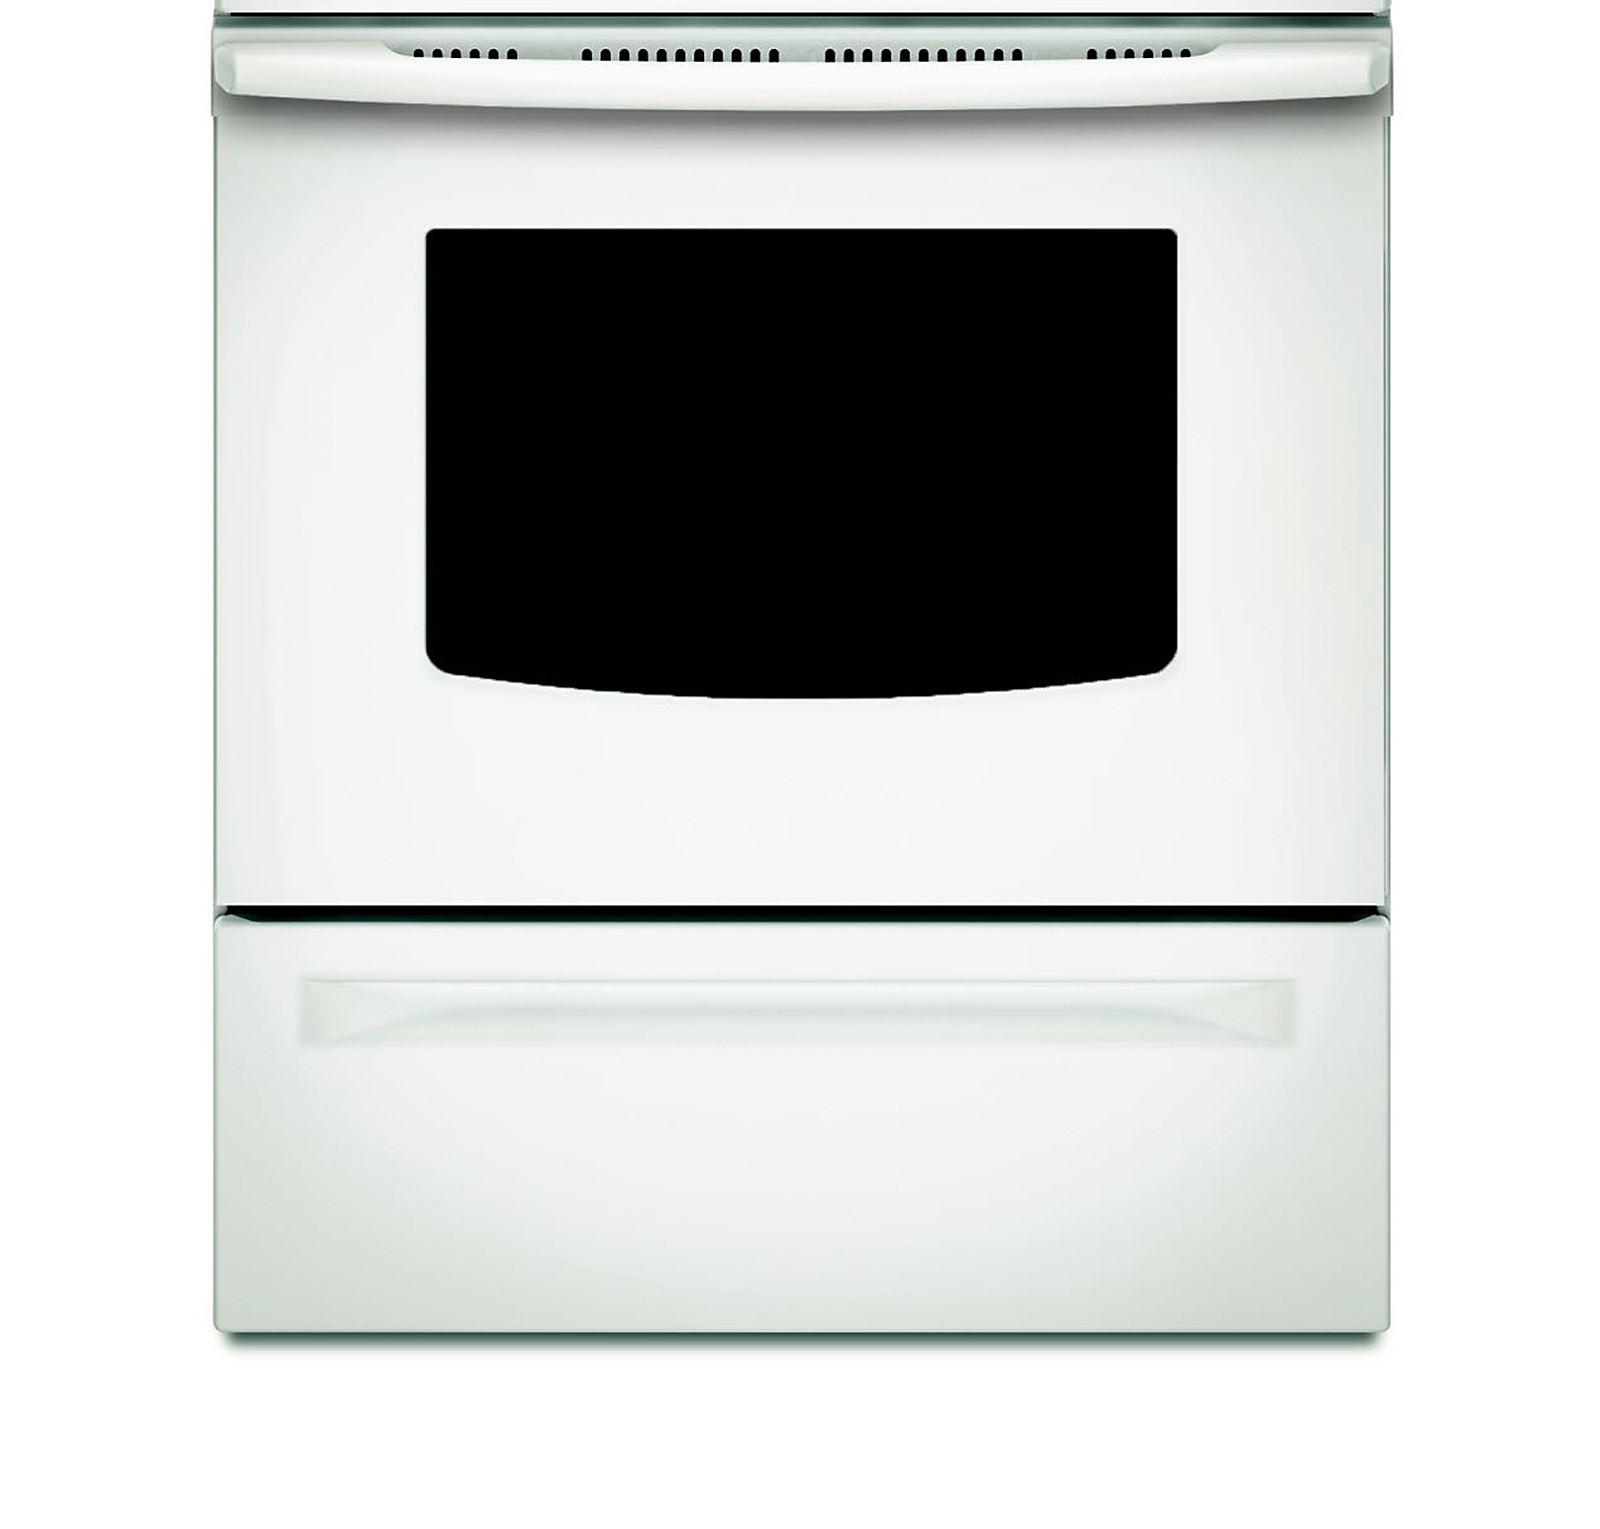 Maytag 5.3 cu. ft. Self-Cleaning Electric Range - White